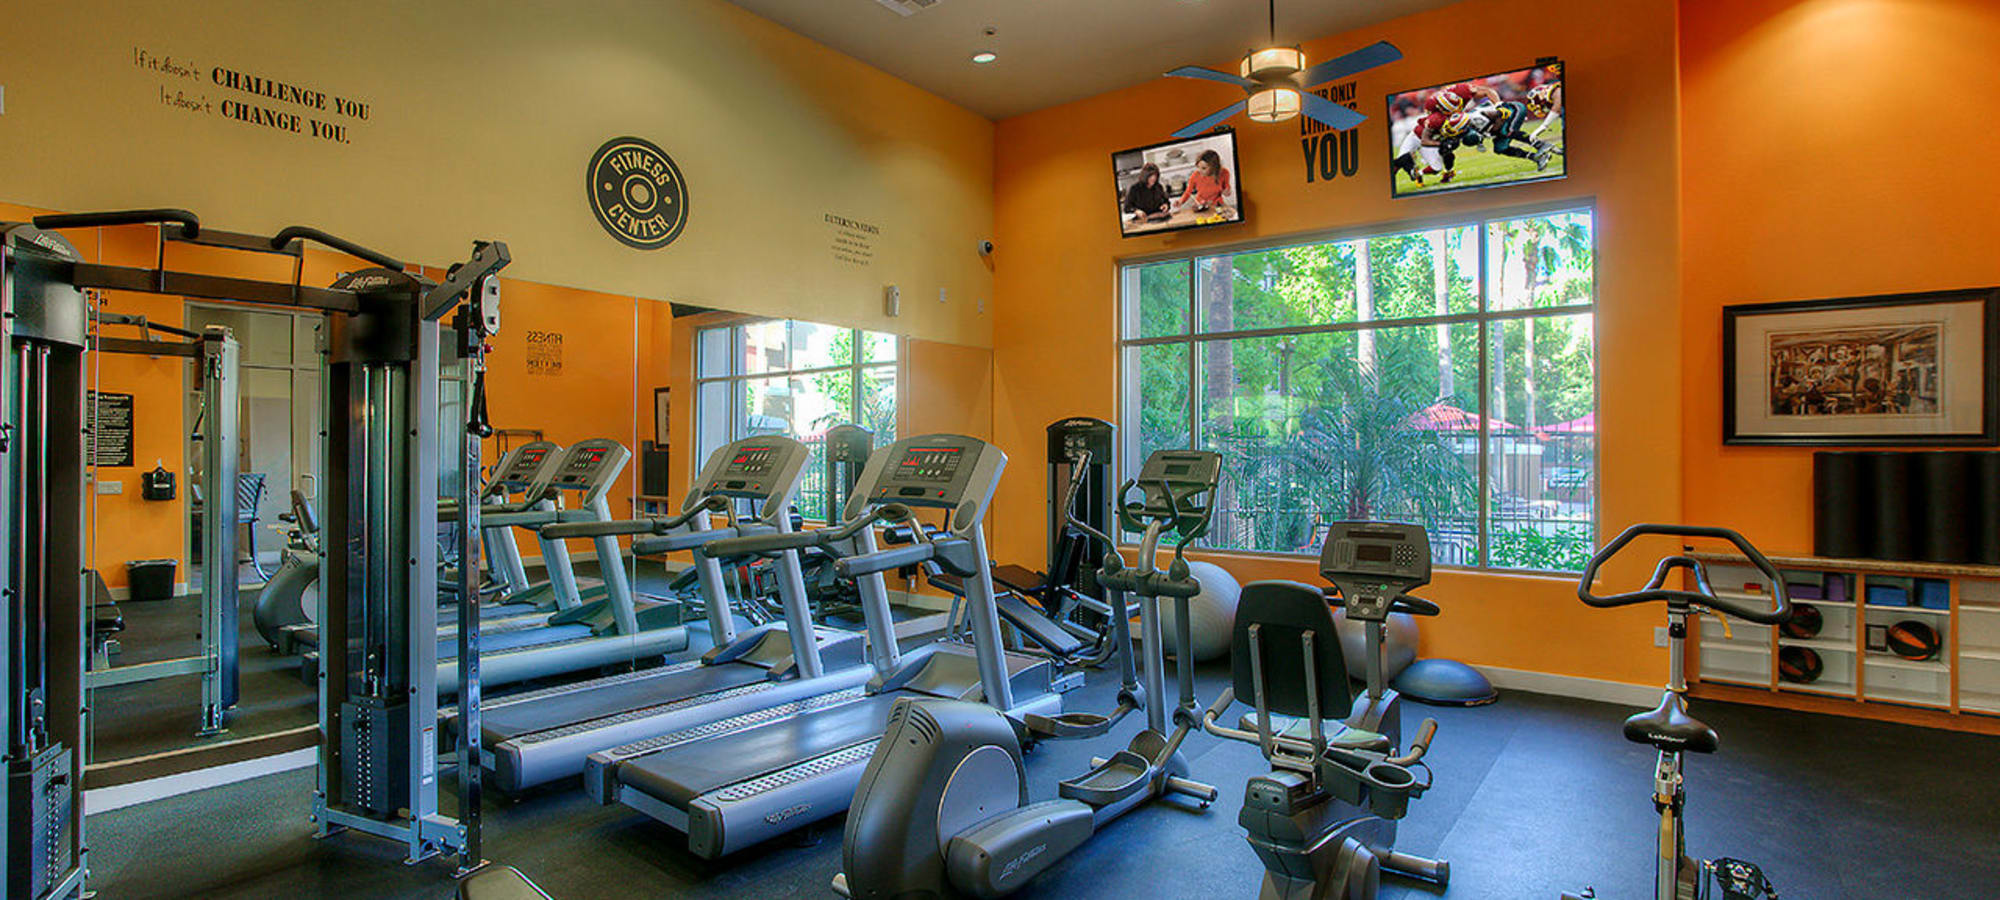 Treadmills and equipment in fitness center at Park on Bell in Phoenix, Arizona